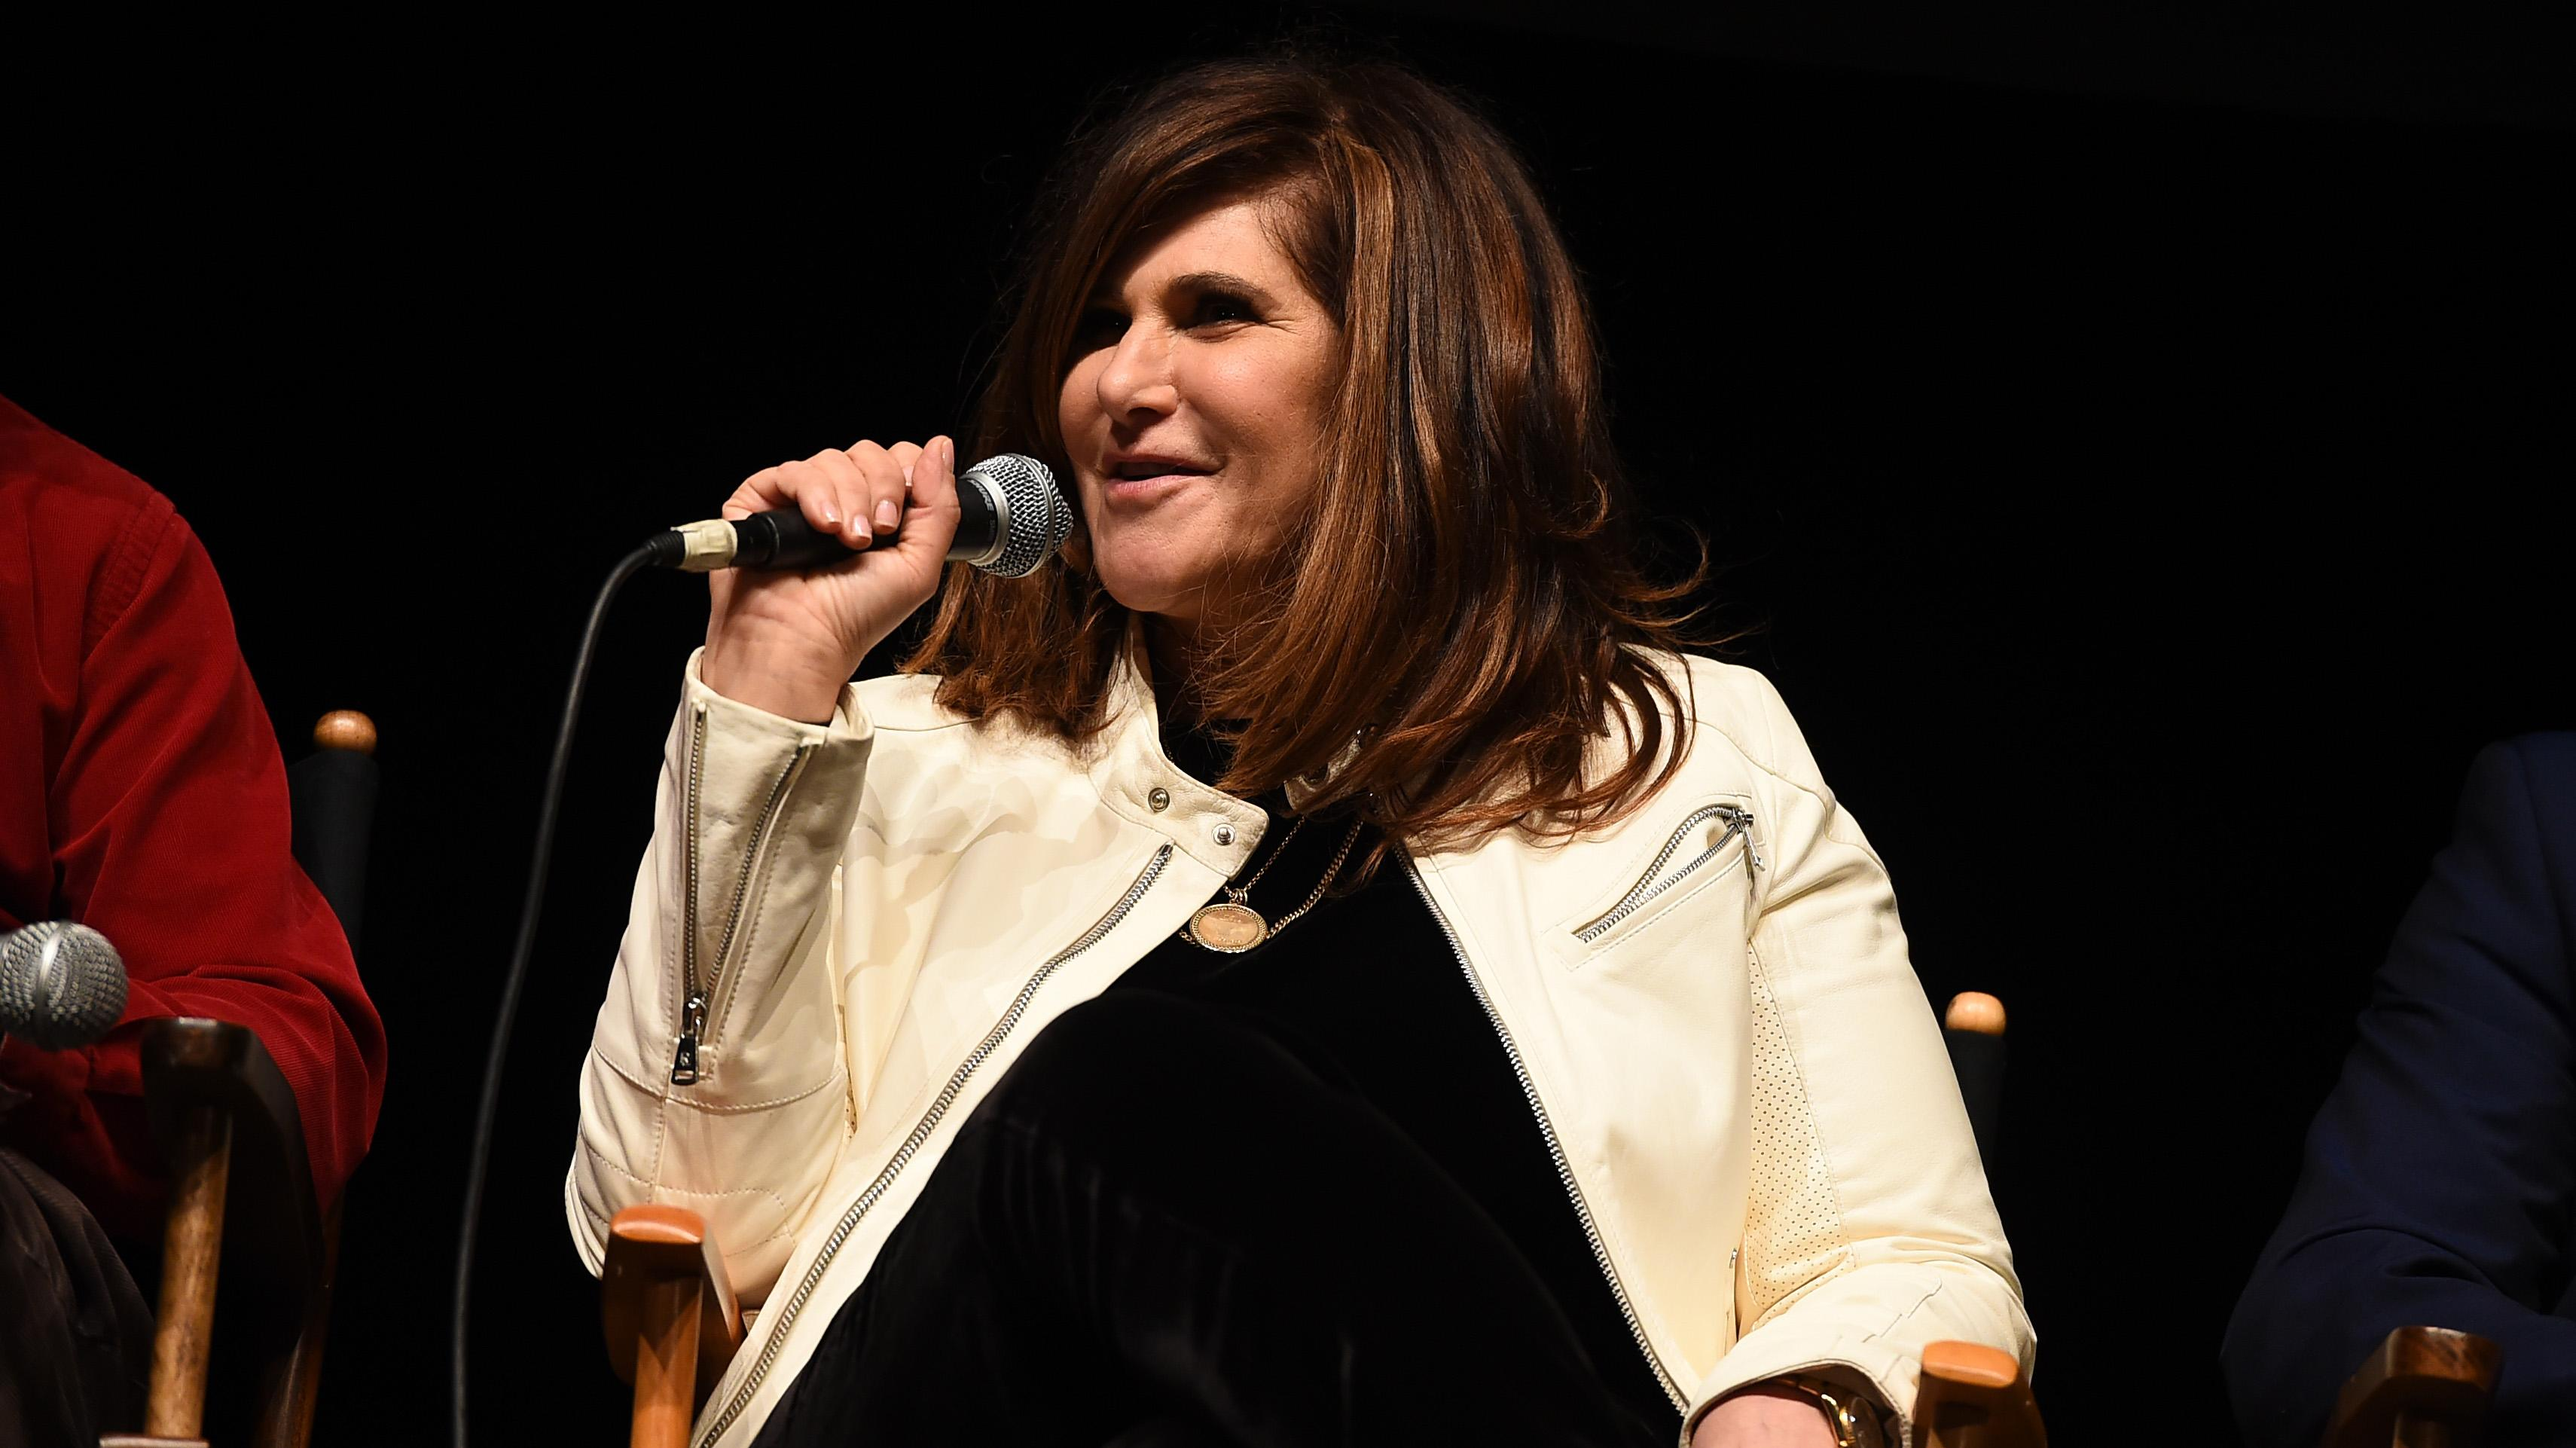 Amy O Neill Nude amy pascal on sony ouster: 'i should have gotten fired much